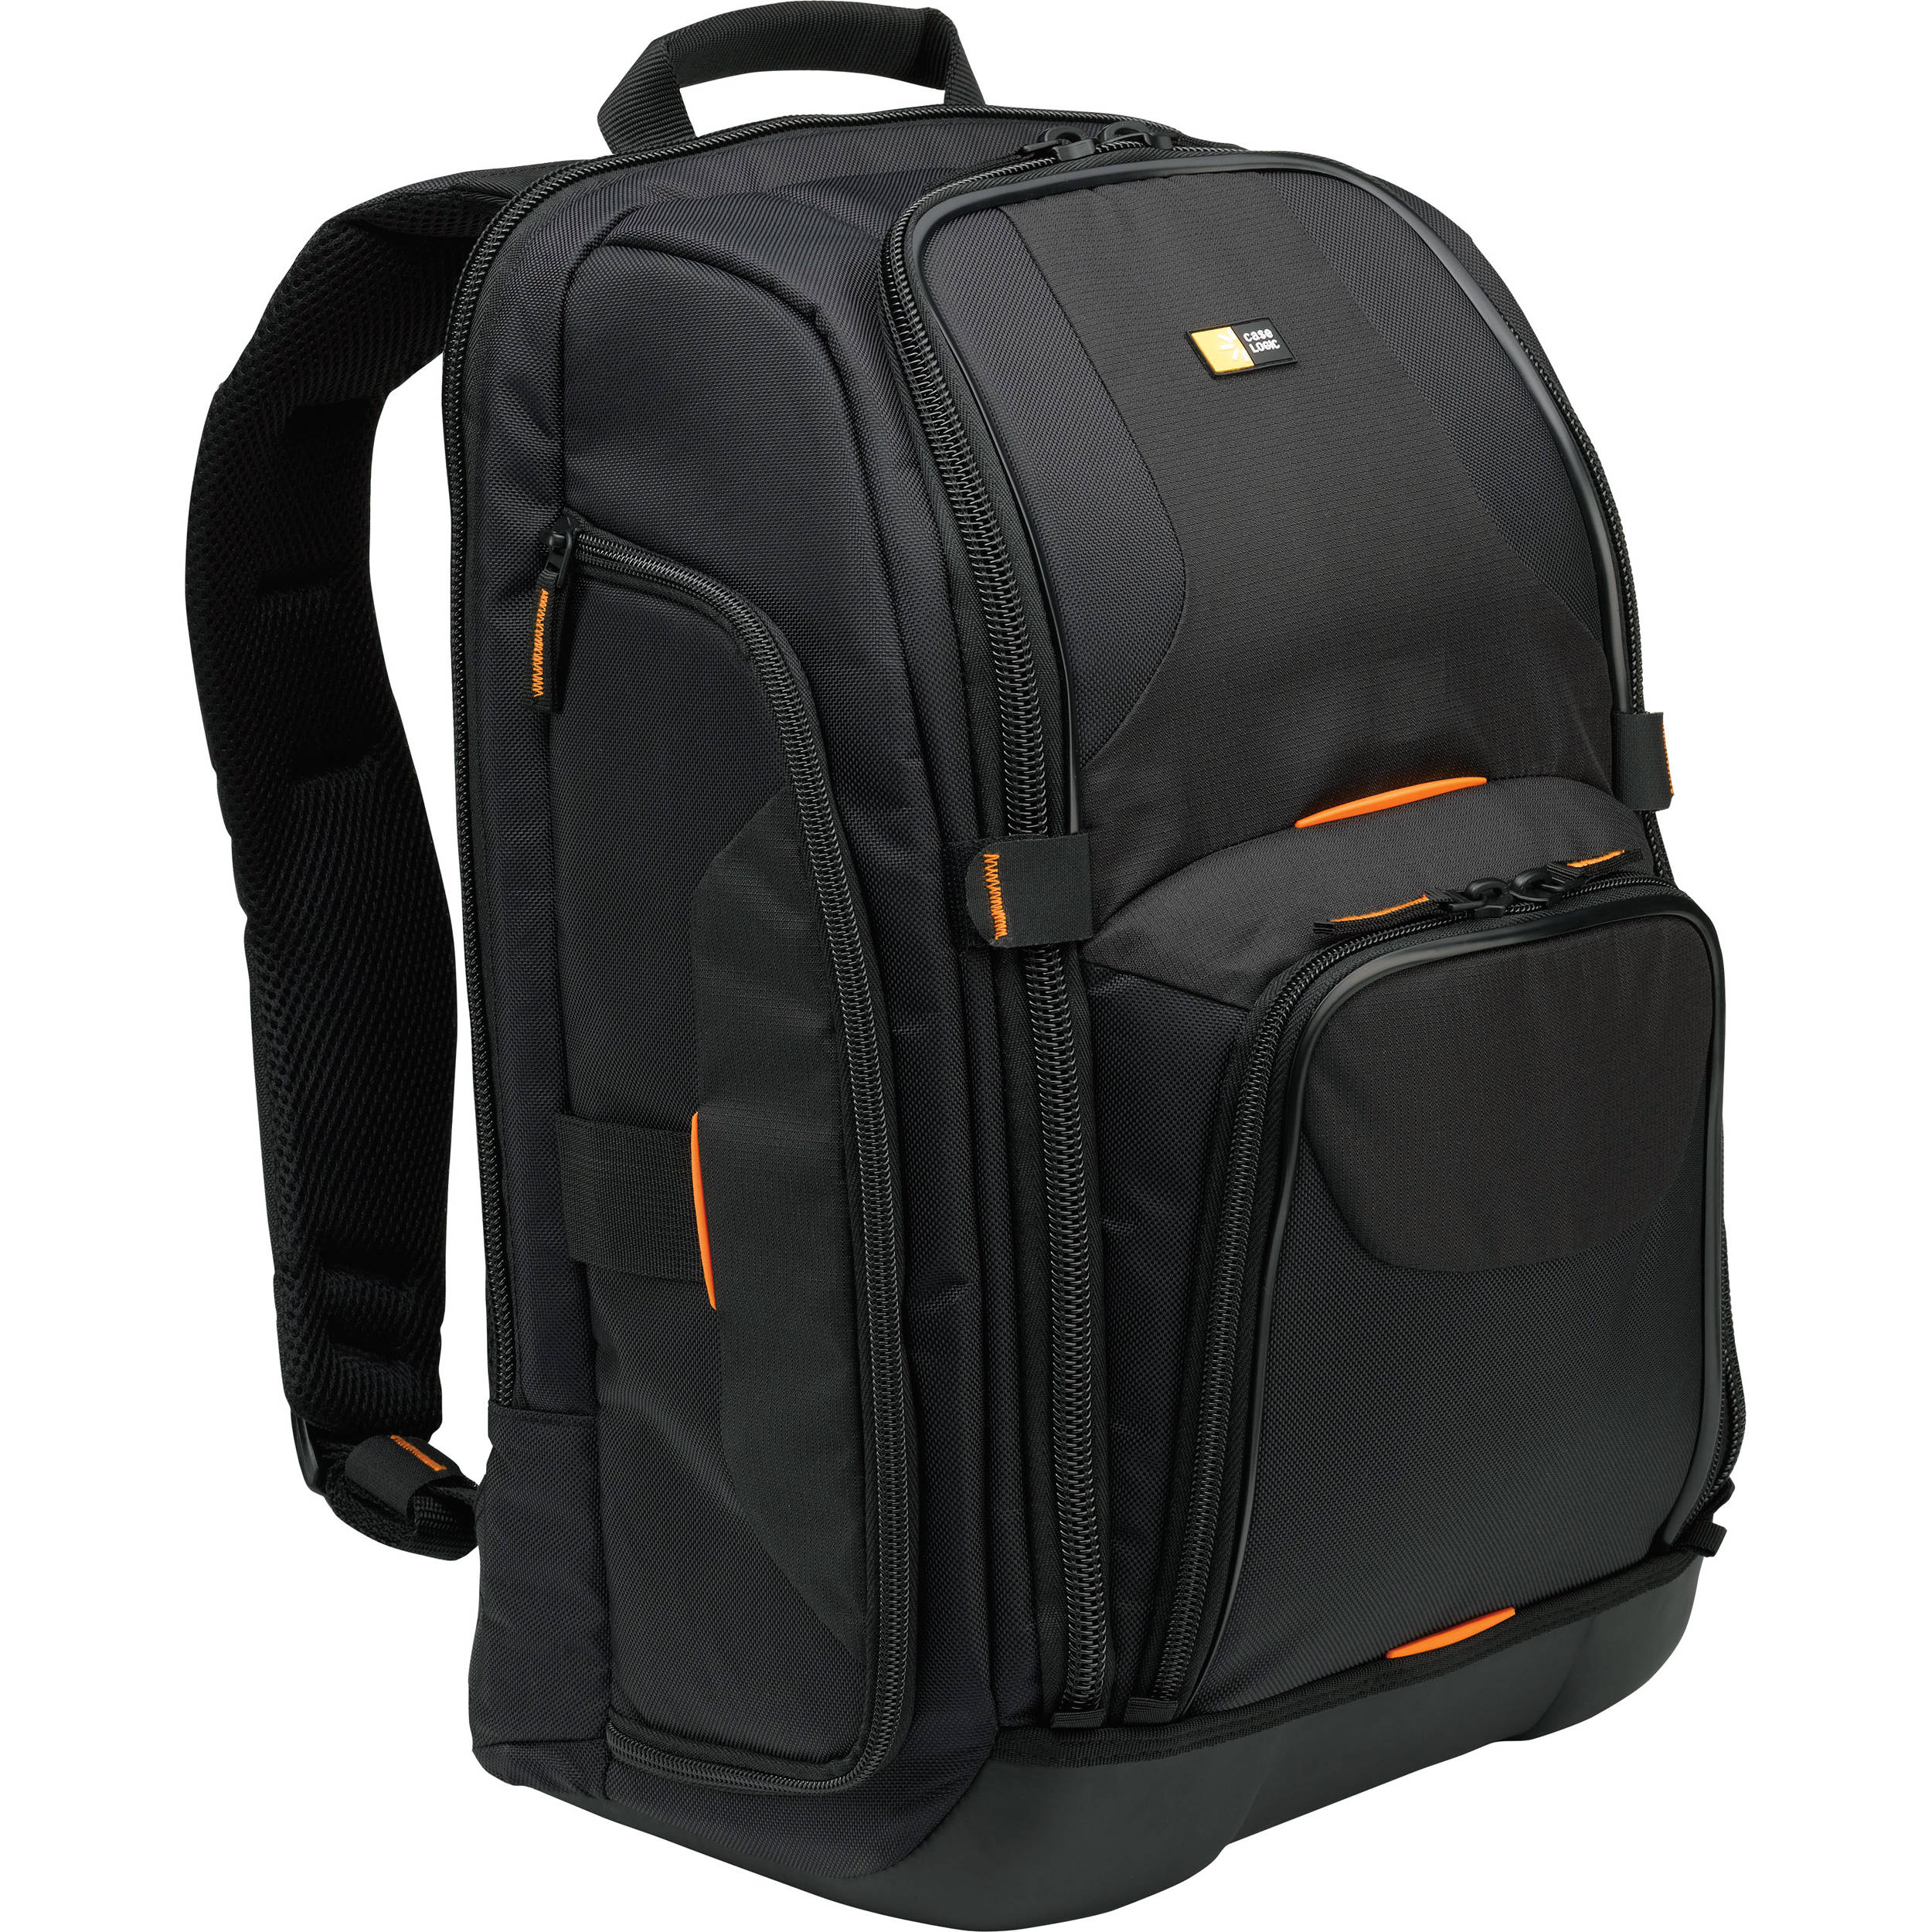 Case Logic SLRC-206 SLR Camera/Laptop Backpack SLRC-206 B&H